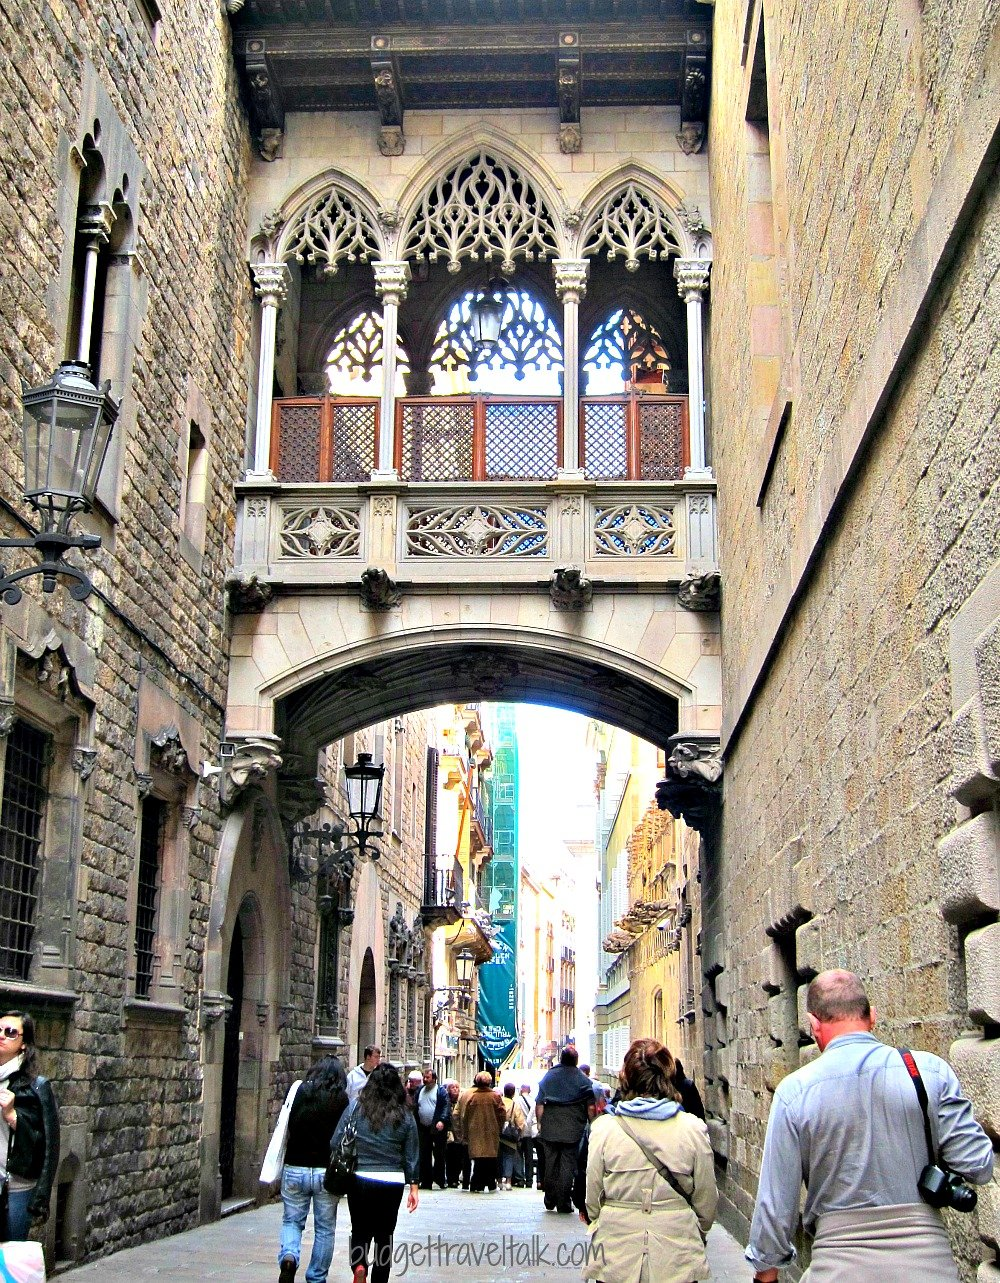 We never tired of walking under this neogothic bridge in Barri Gotic